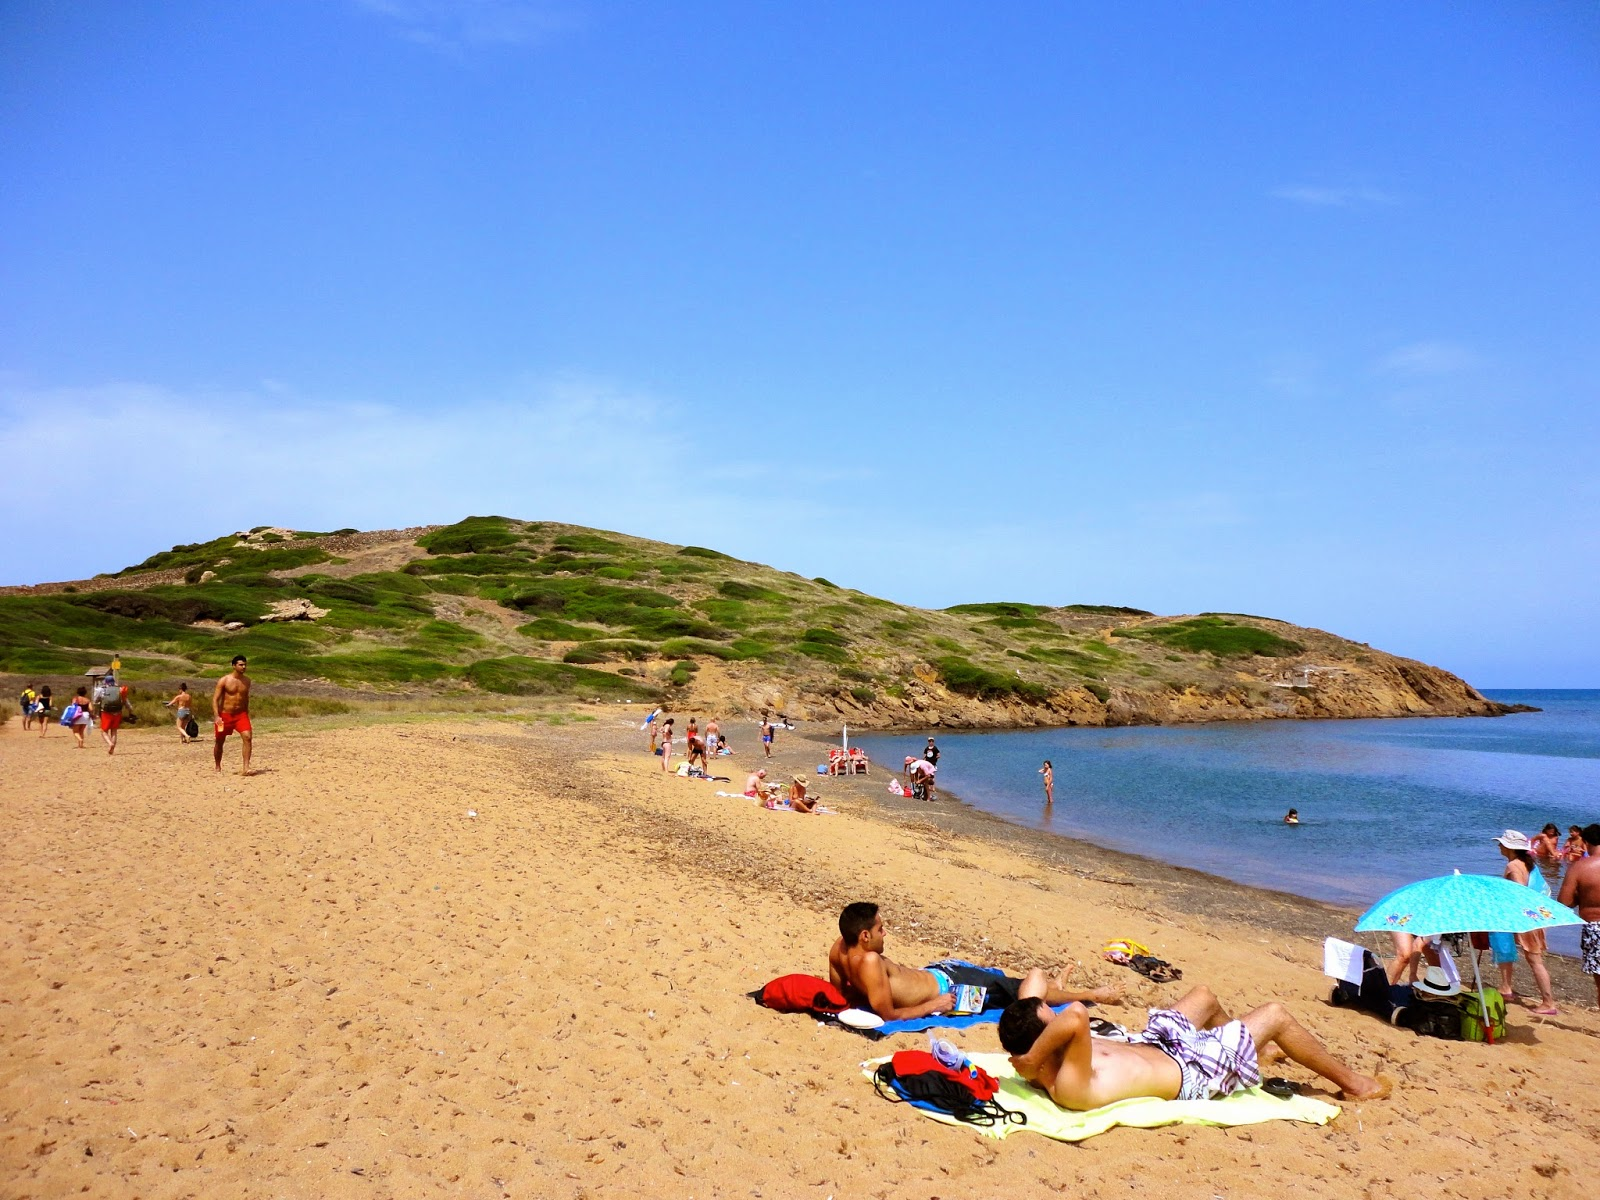 Travel Inspiration | Menorca, Spain | beach scene with hills